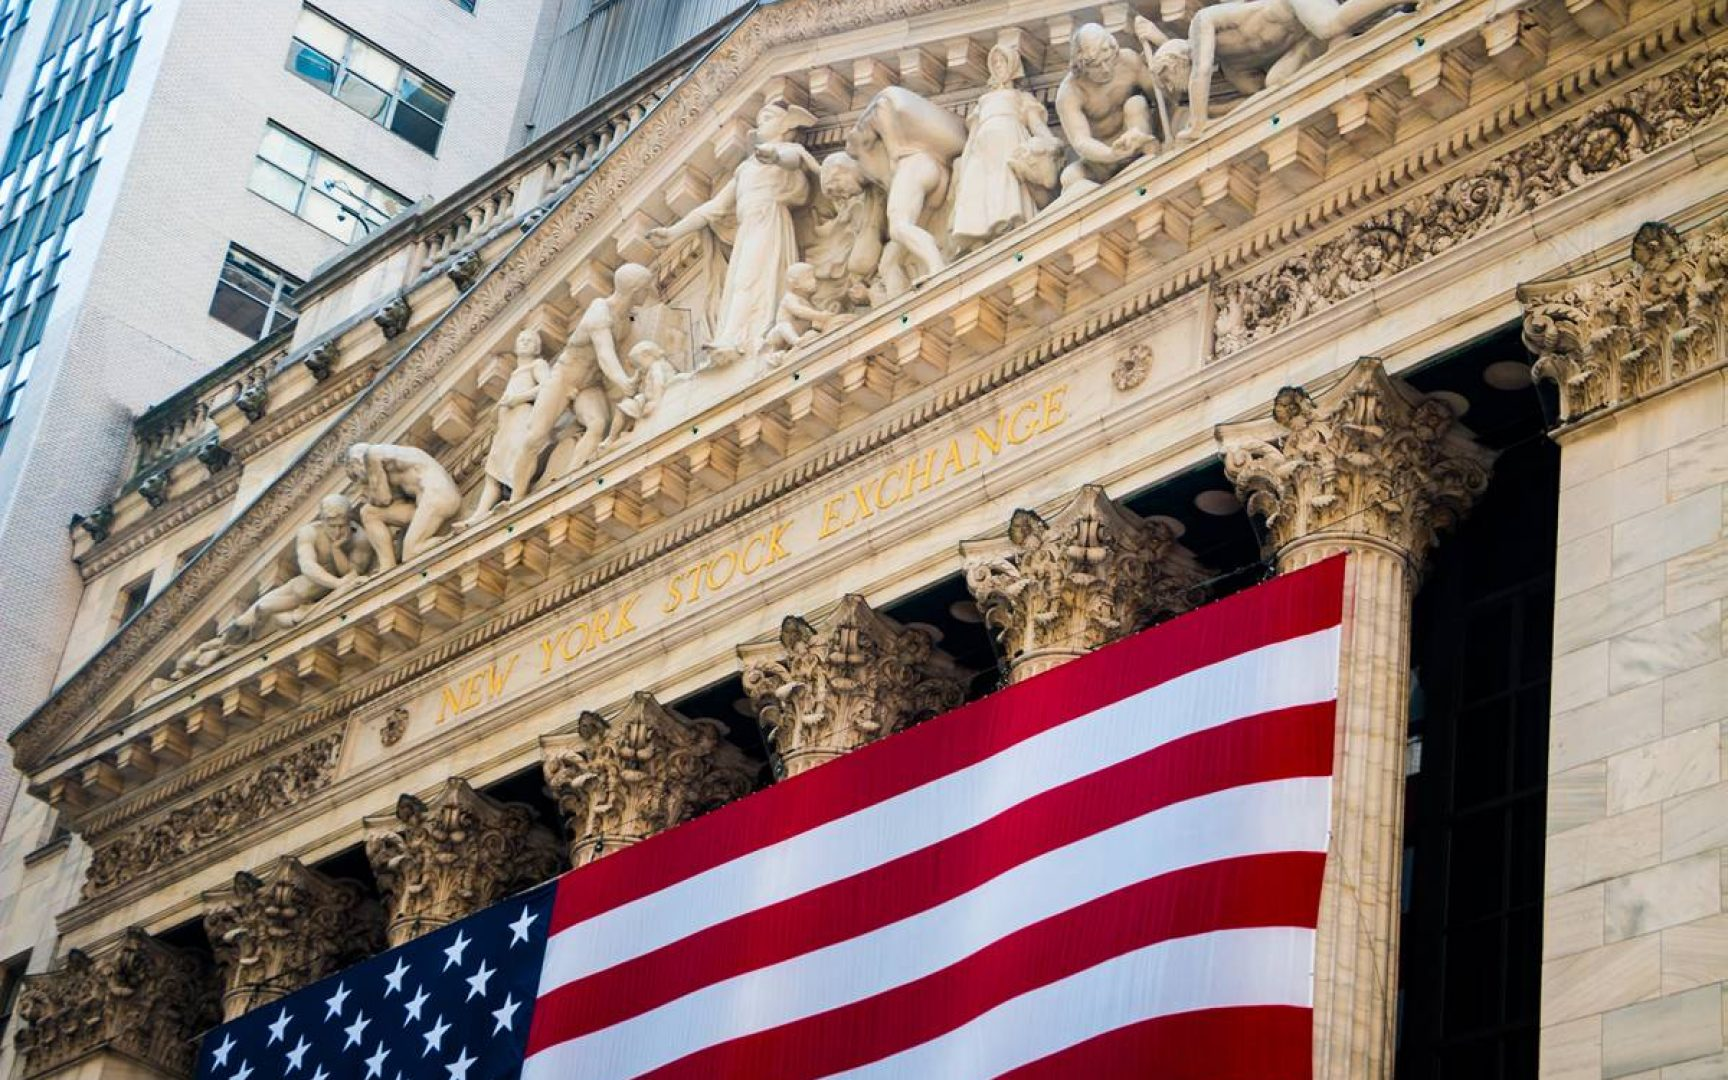 New York Stock Exchange Building on Wall Street with American Flag draped across the front